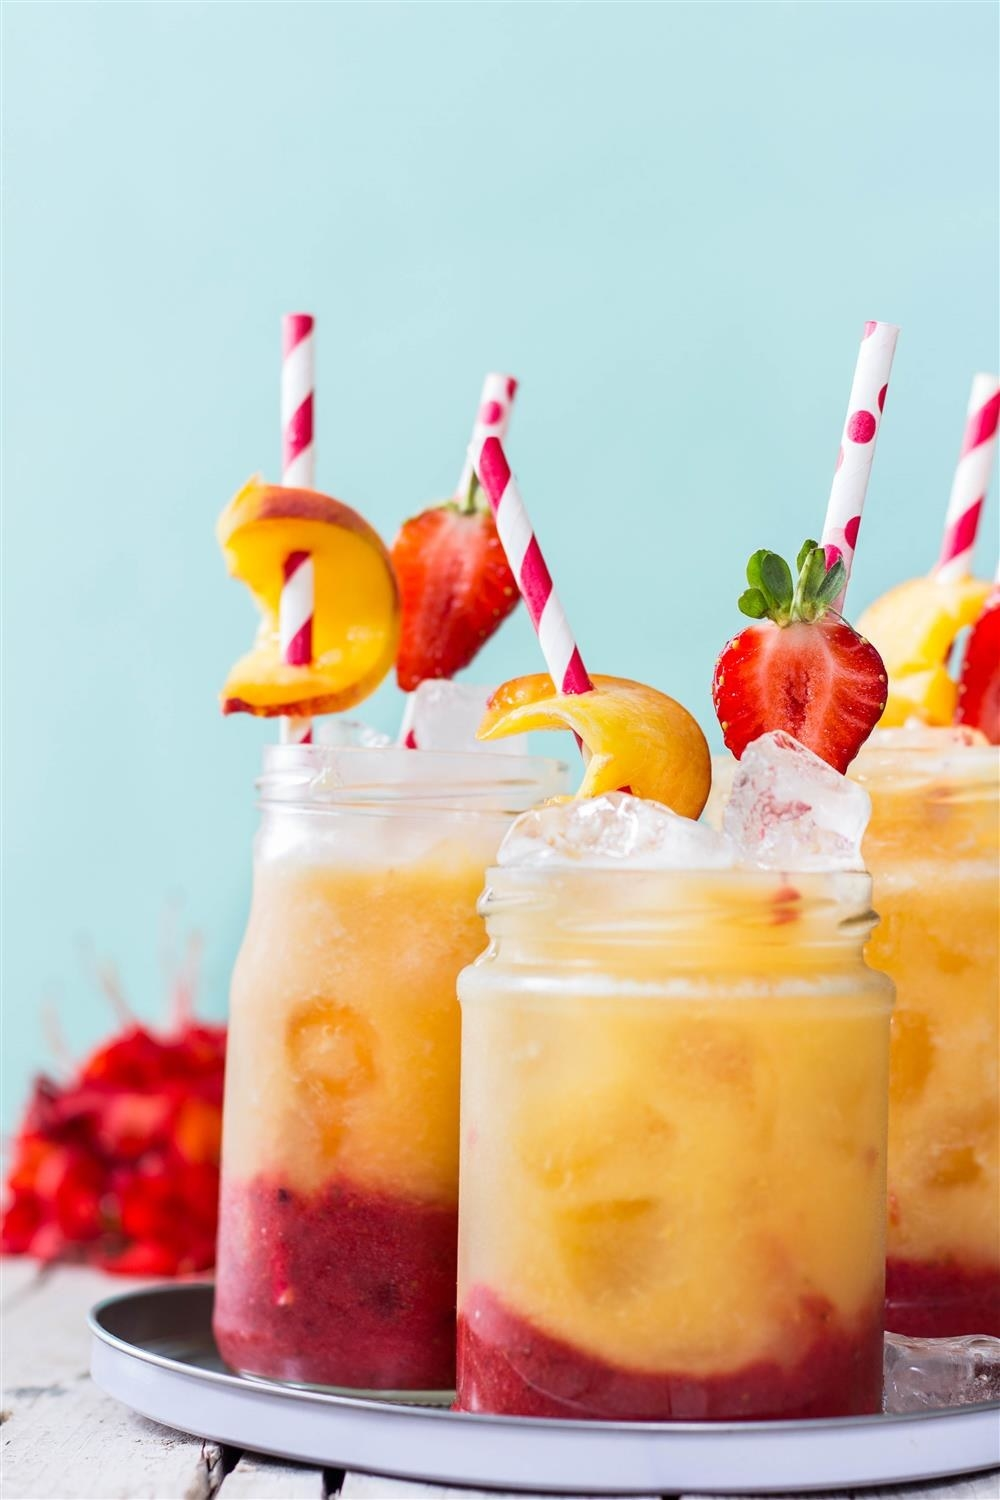 13 Non-Alcoholic Drinks That'll Keep You So Refreshed This Summer